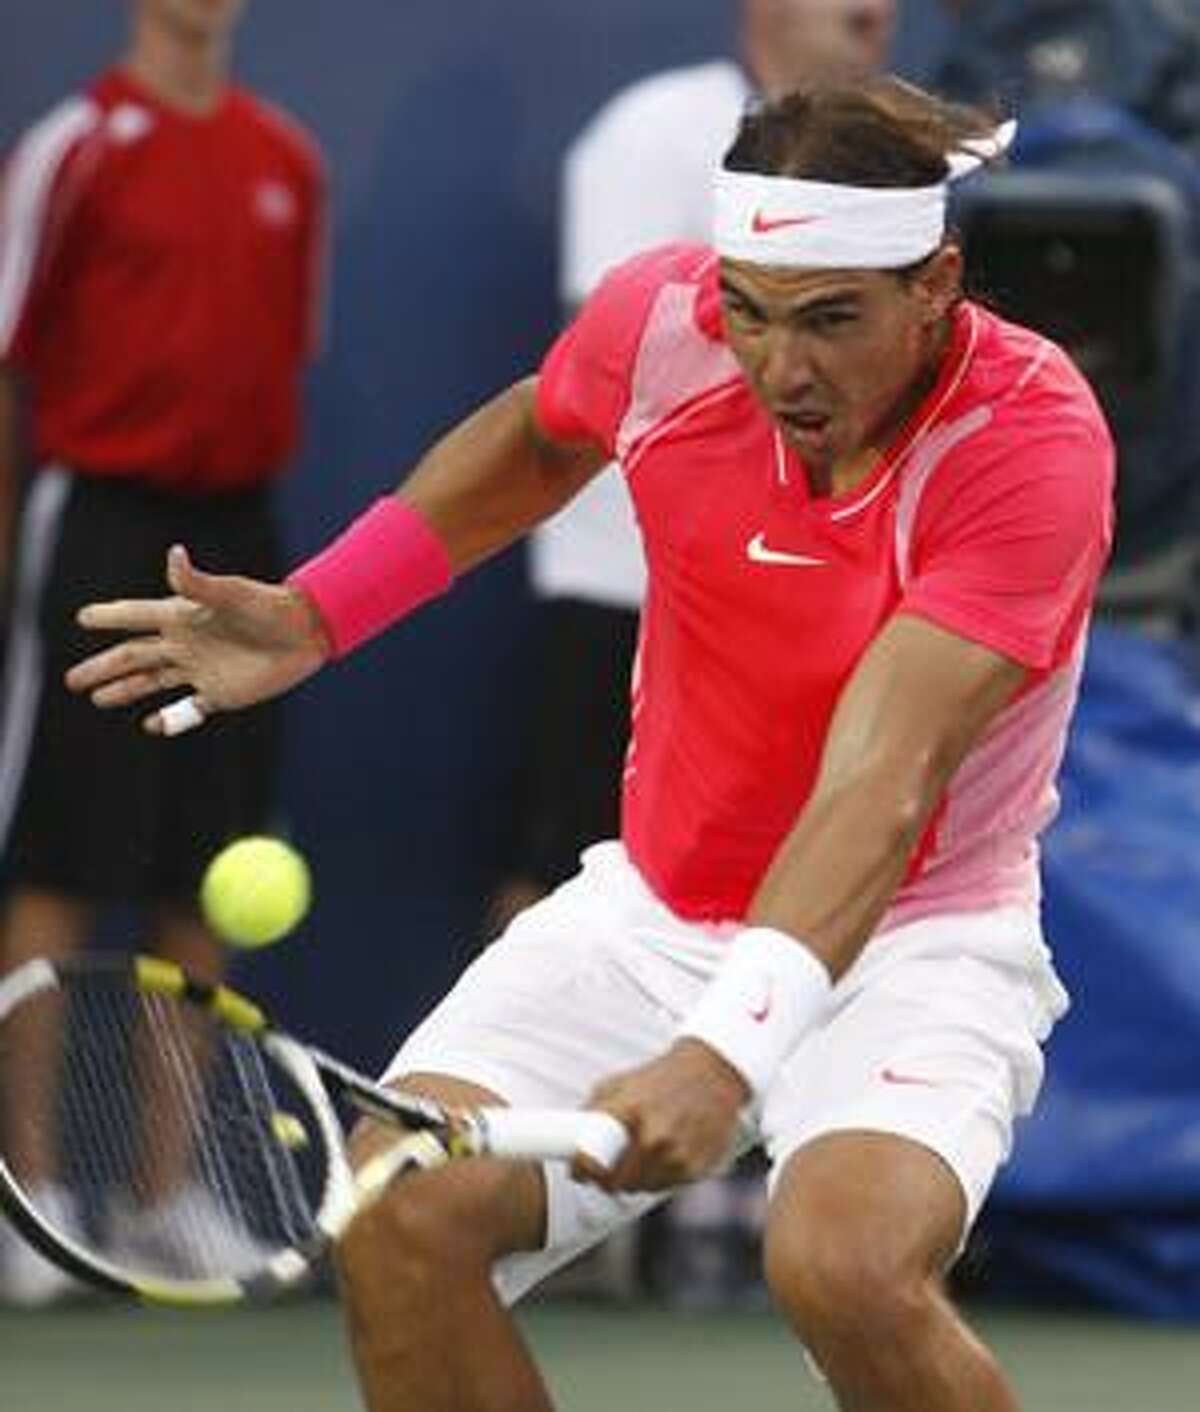 AP Rafael Nadal returns a volley to Marcos Baghdatis in a quarterfinal match at the Cincinnati Masters tennis tournament, Aug. 20, in Mason, Ohio. Nadal is the top seed in the upcoming U.S. Open.